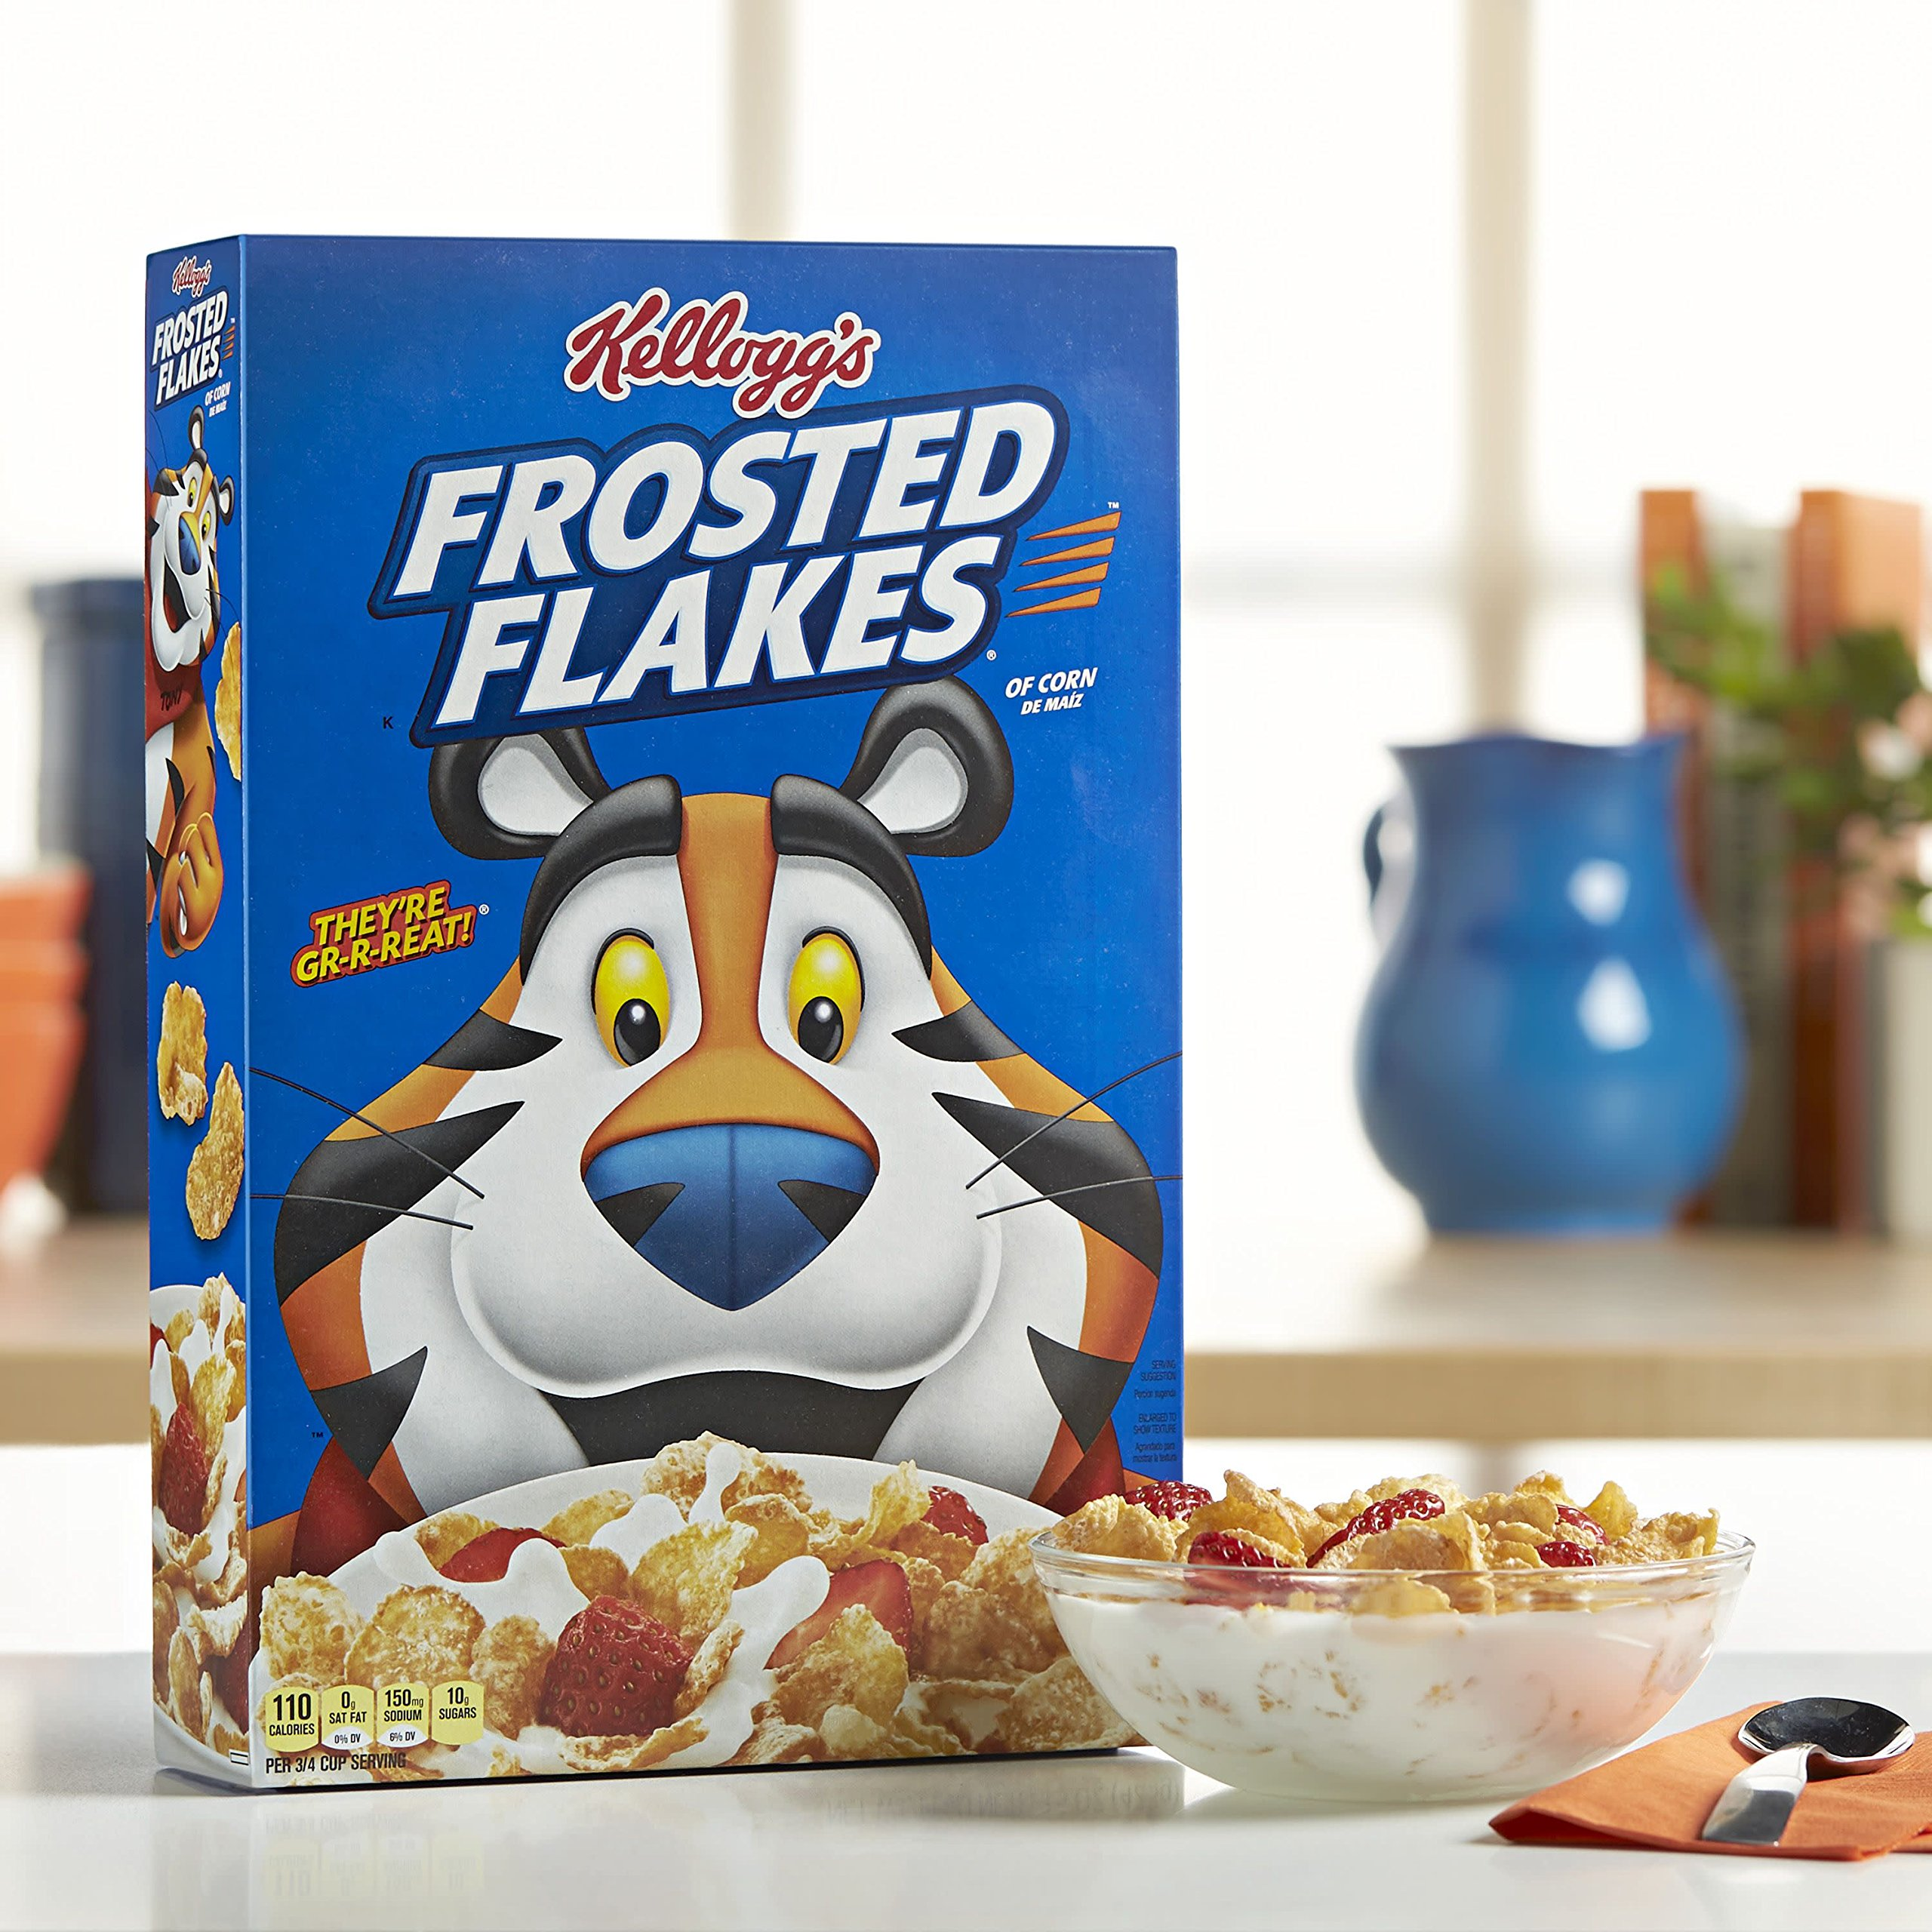 Kellogg's Frosted Flakes, Breakfast Cereal, Fat-Free, Family Size, 24 oz by Kellogg's (Image #4)